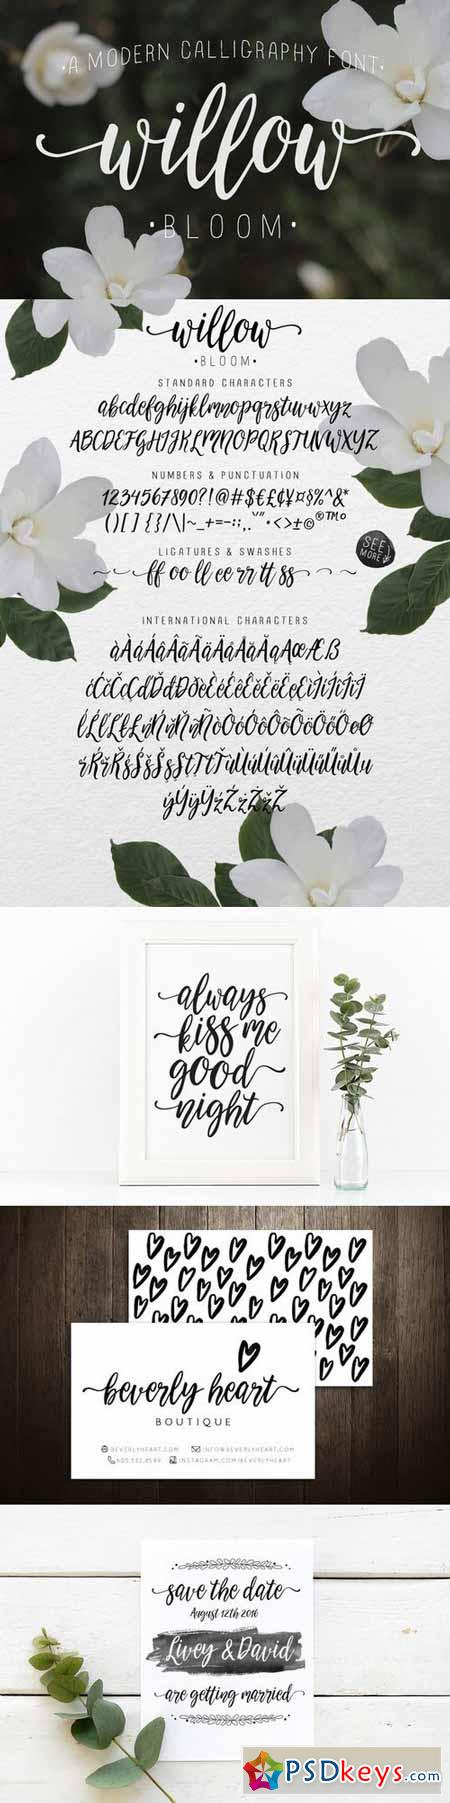 Calligraphy font - Willow Bloom 588287